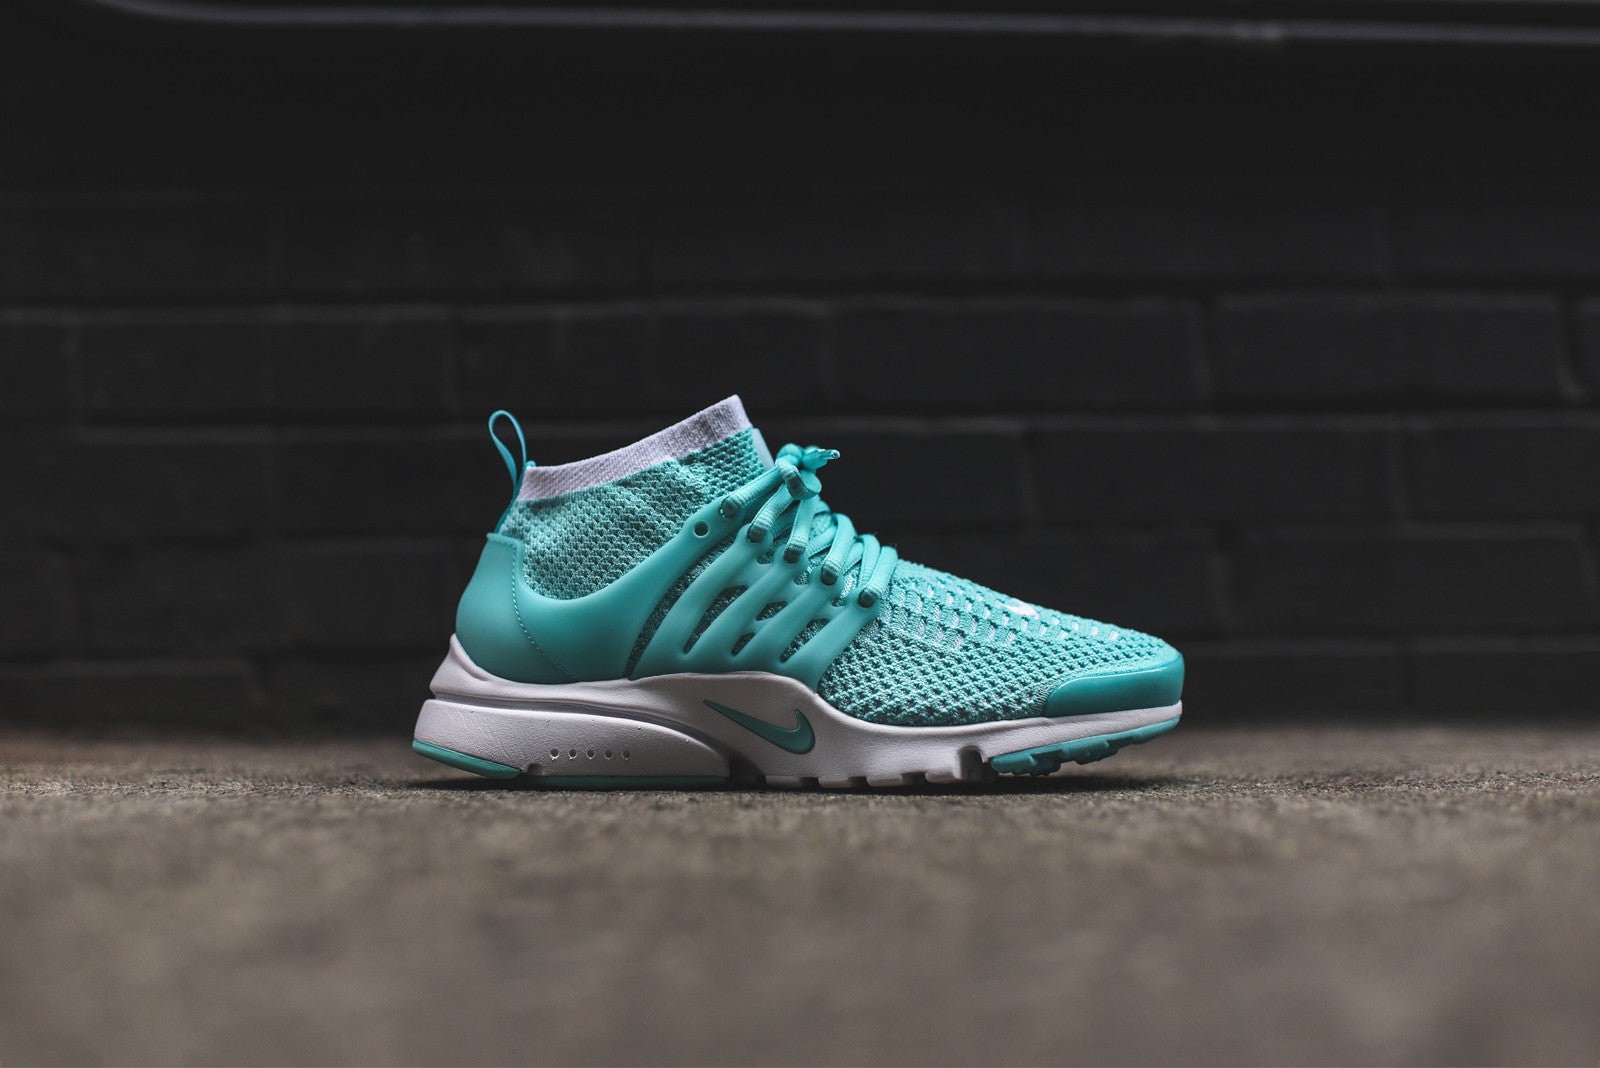 3d3ae250629f Nike WMNS Air Presto Ultra Flyknit - Hyper Turquoise – Kith